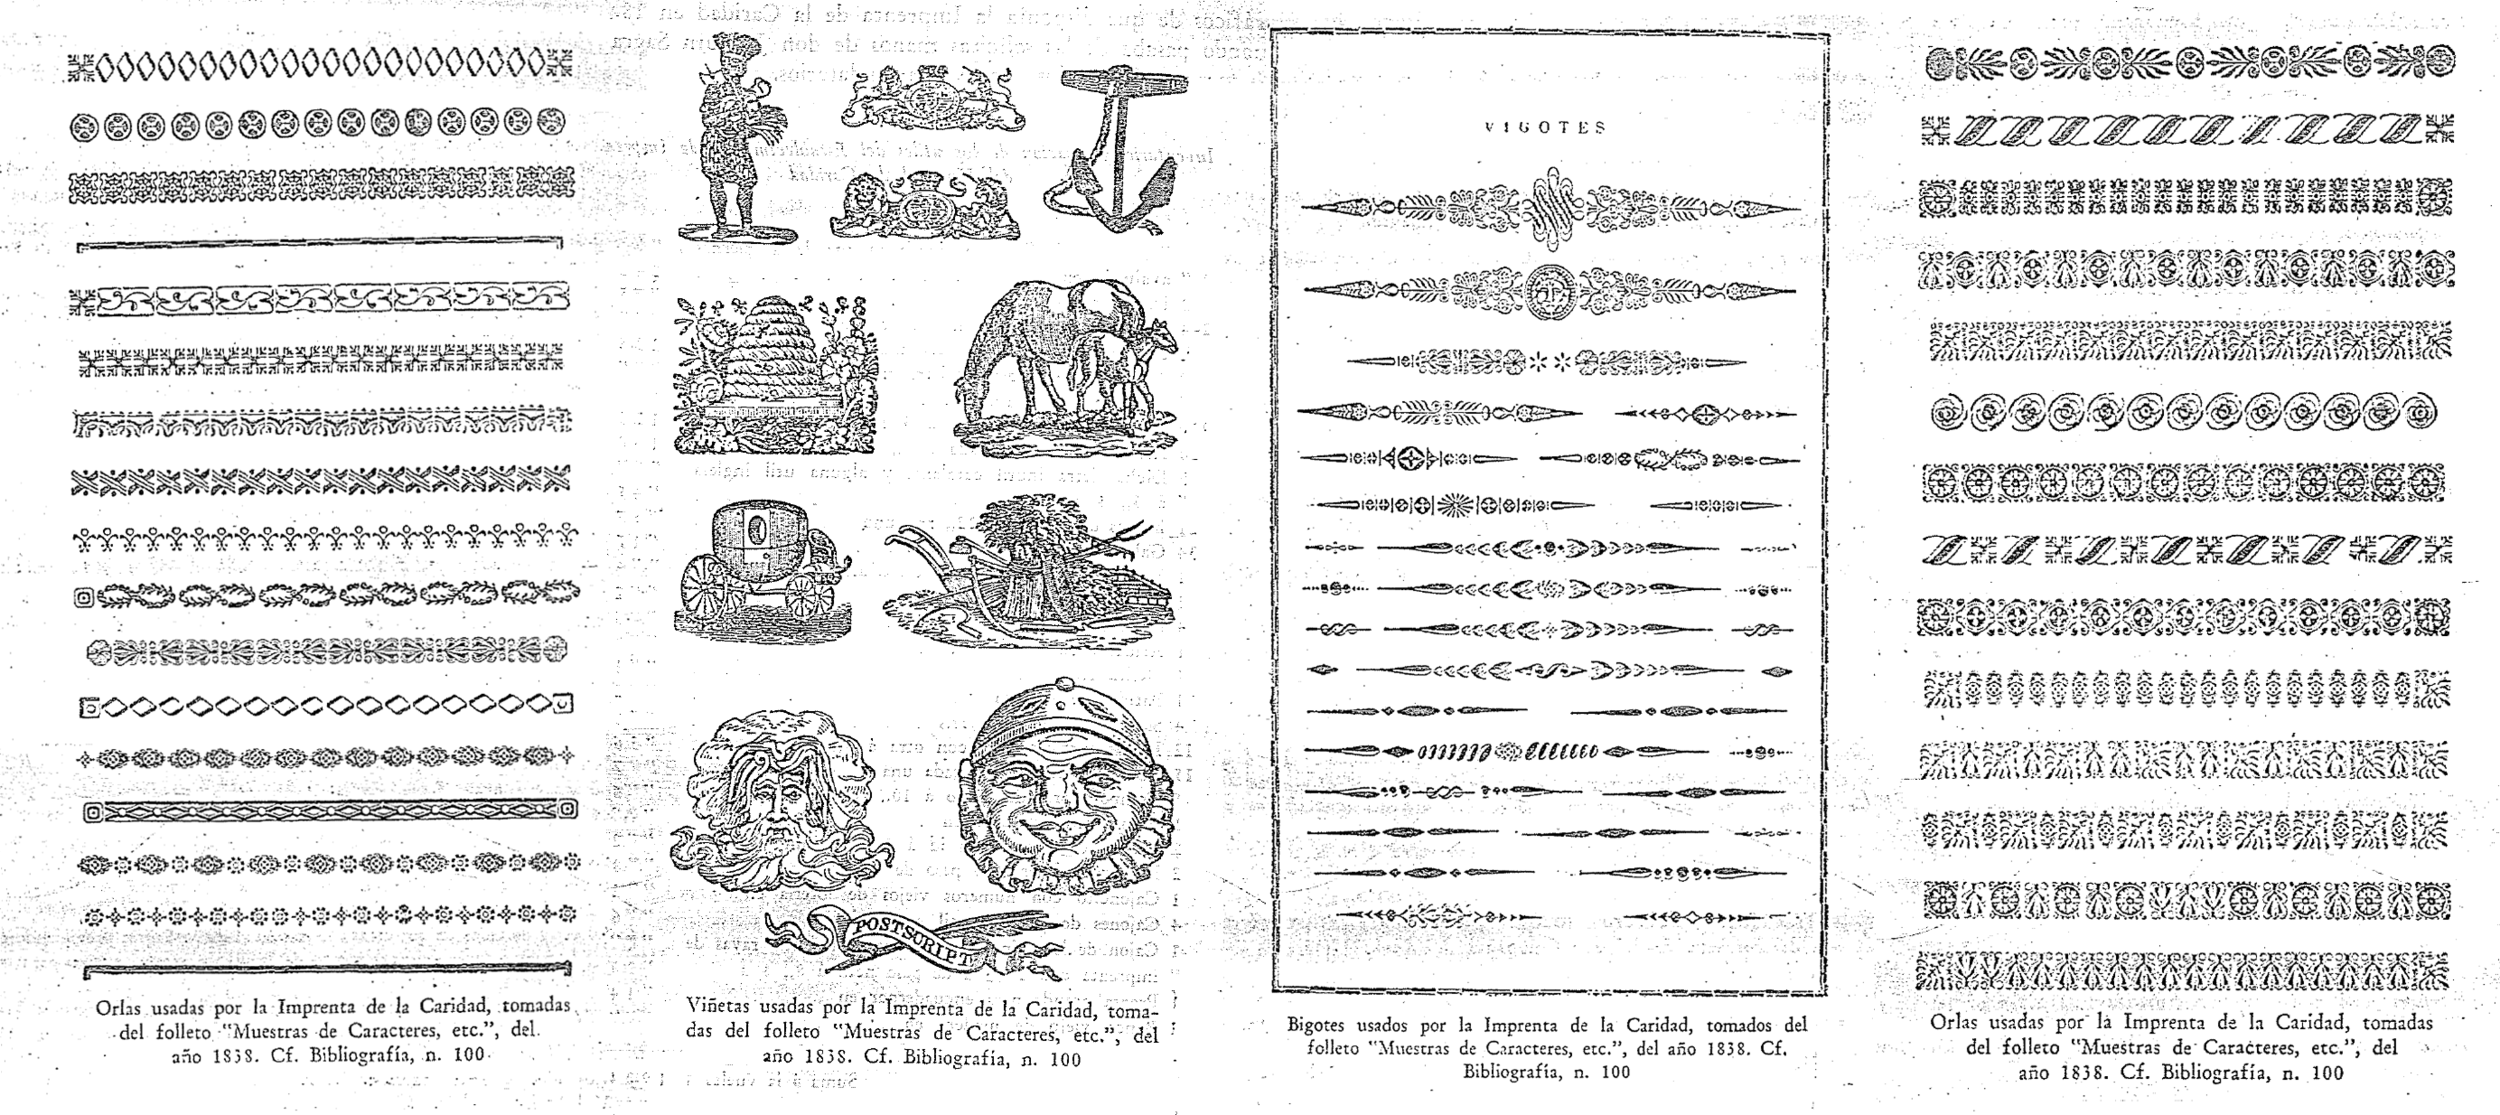 7. Borders, bigotes and ornaments from the catalog of la Imprenta de La Caridad (1838).png